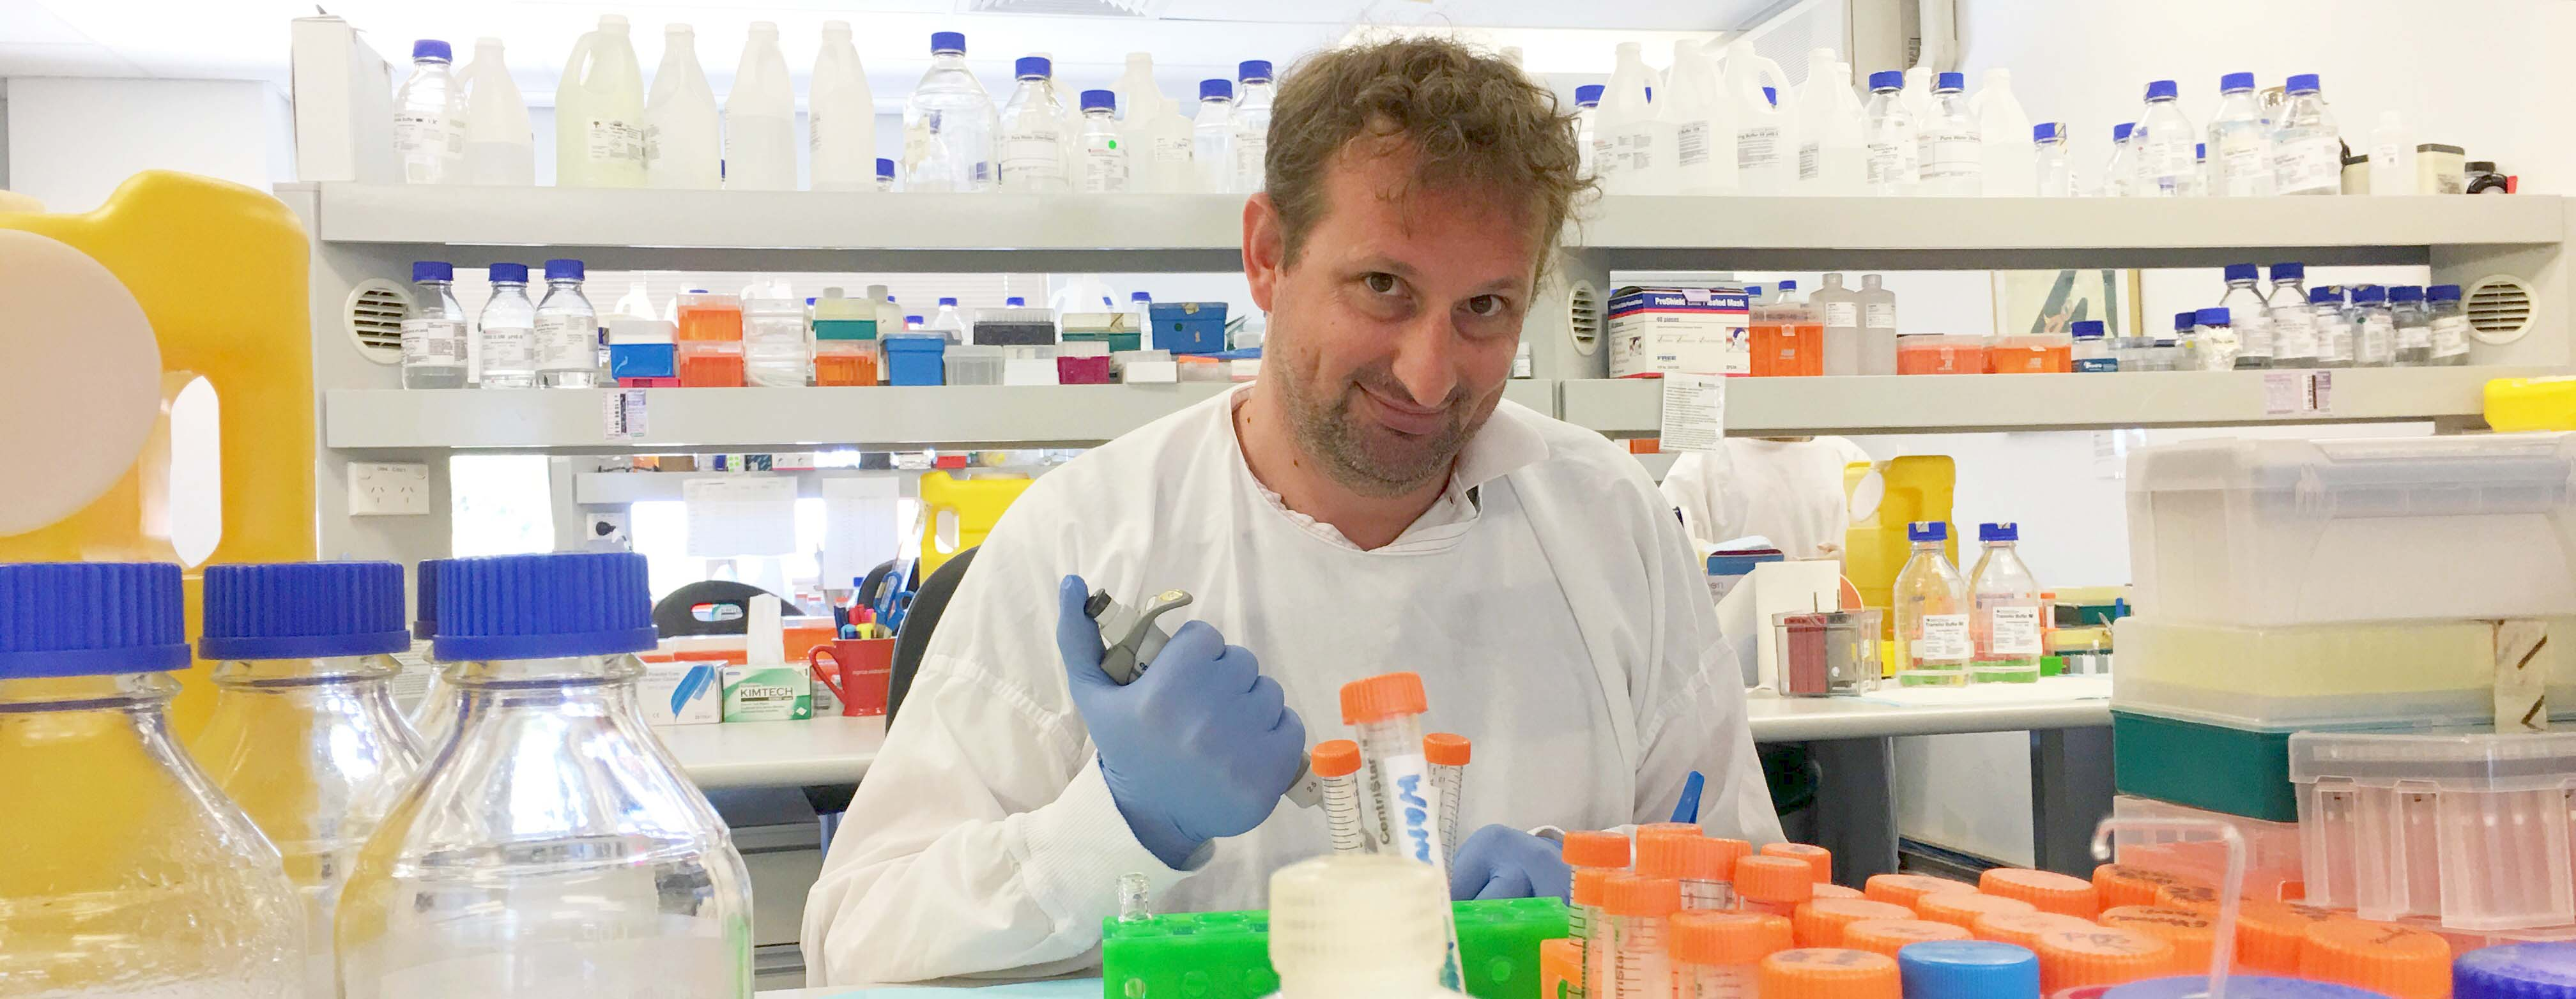 Dr Nic Dzamko in lab studying Parkinson's disease